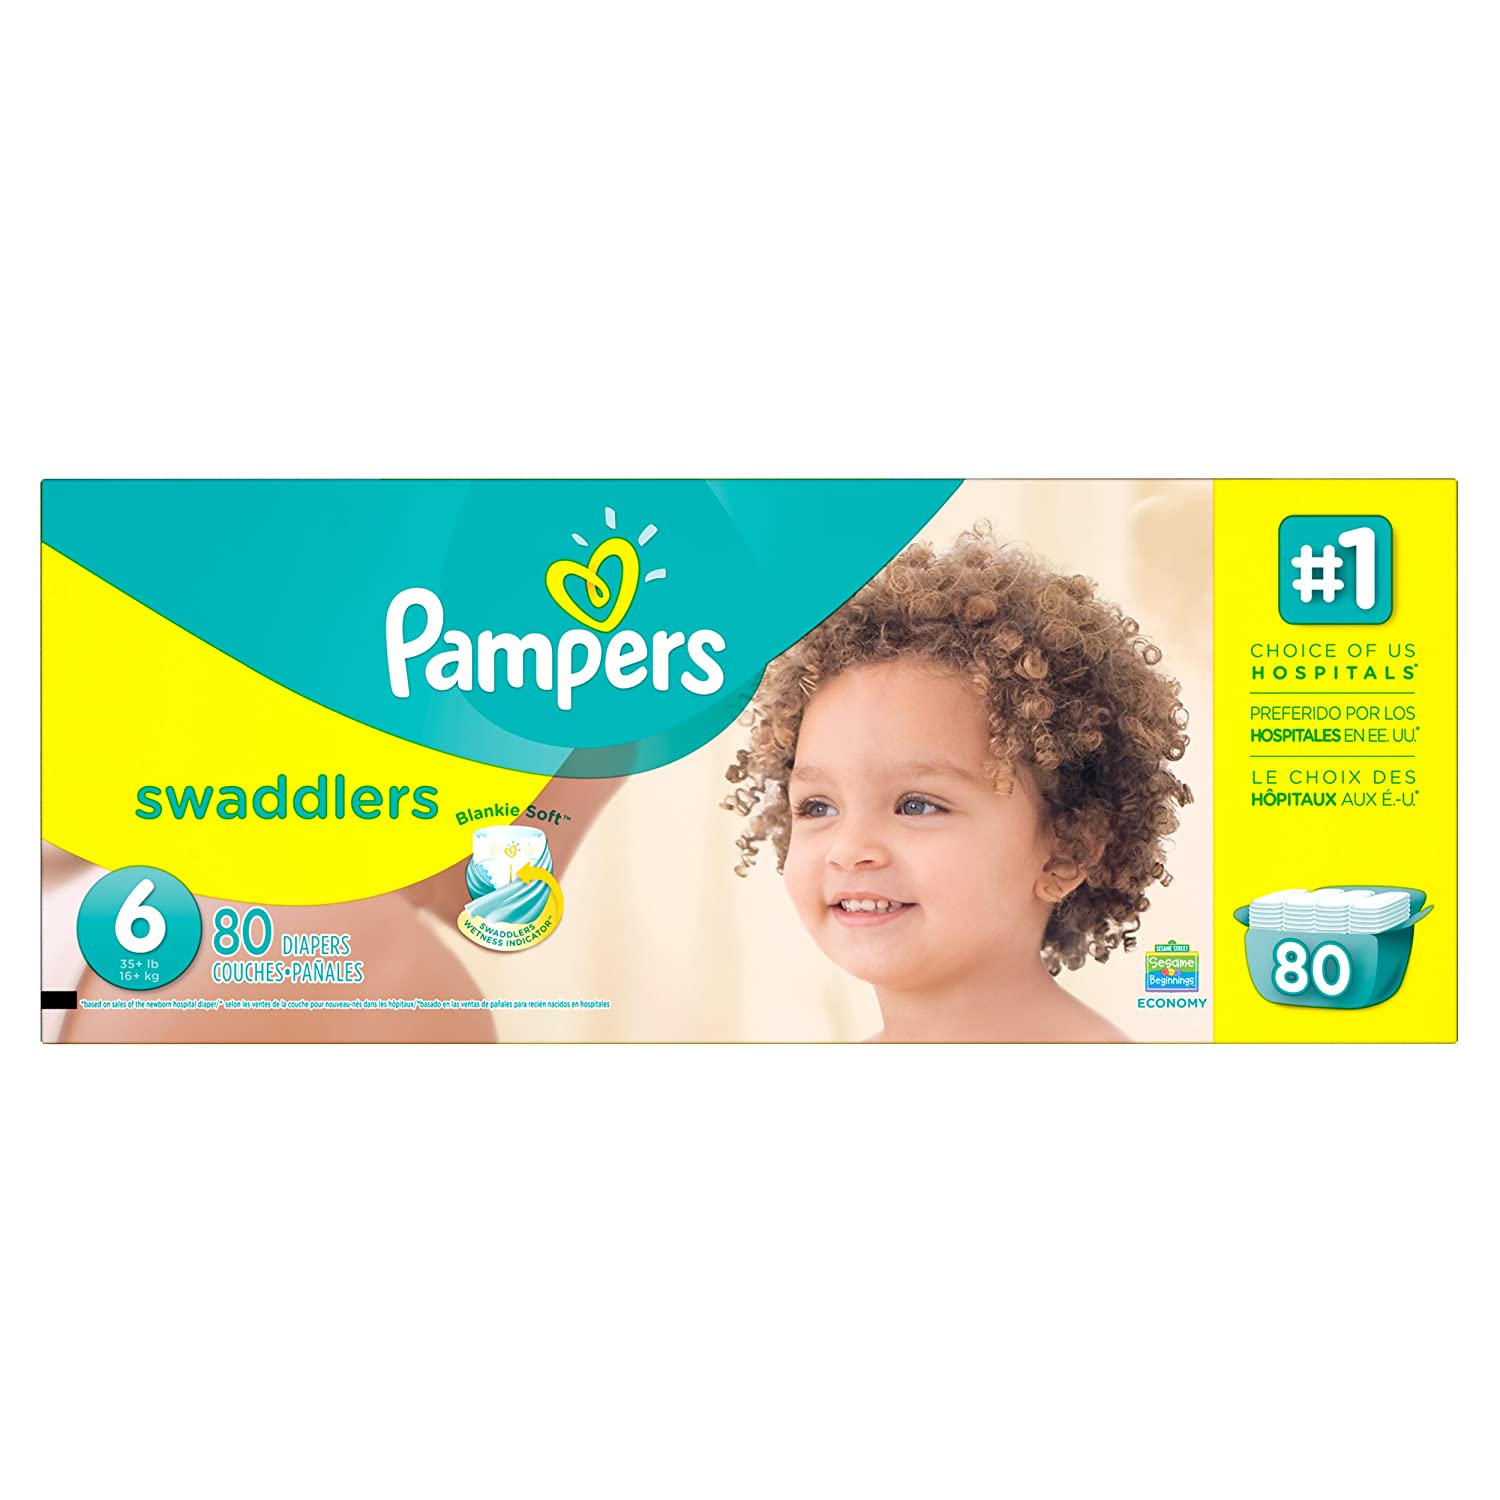 Amazon.com: Pampers Swaddlers Disposable Diapers Size 6, 80 Count, ECONOMY: Health & Personal Care